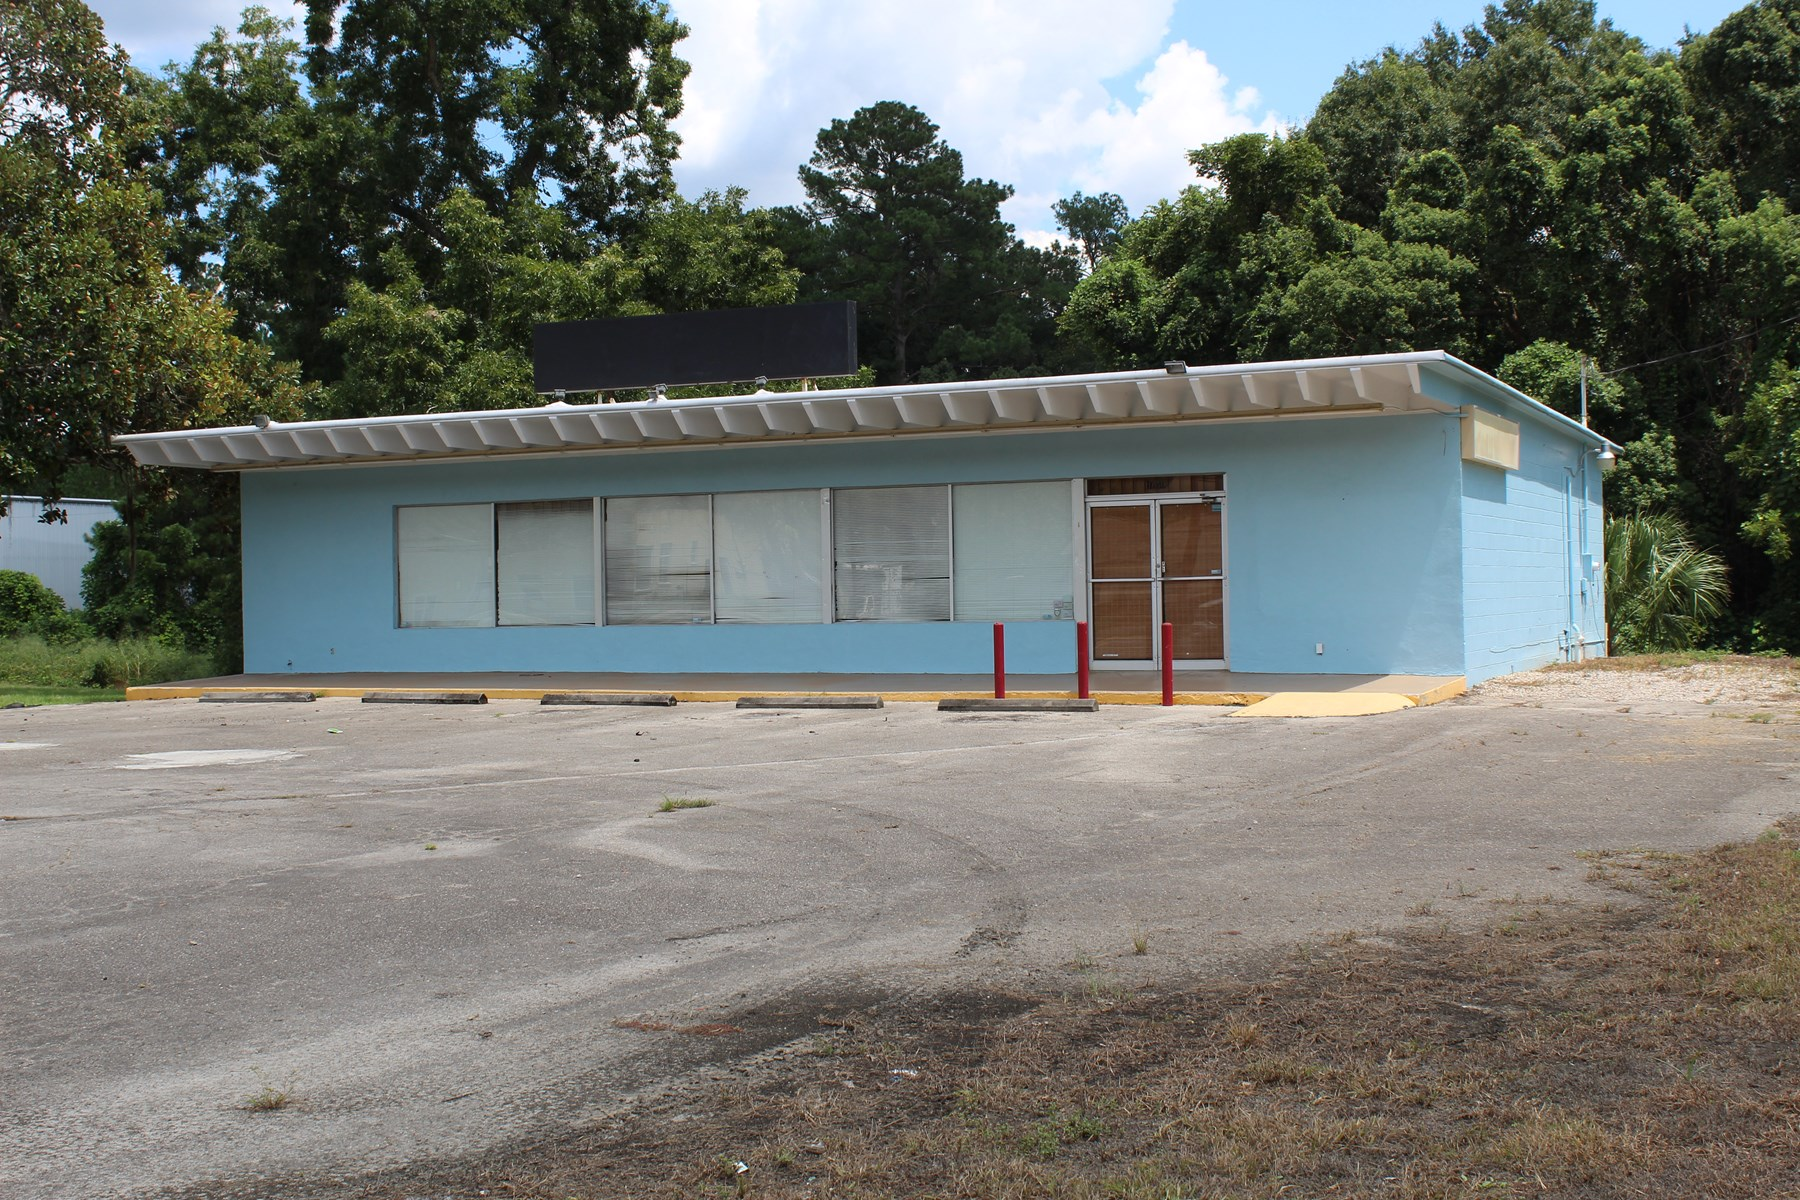 Commercial Building and Property - US 19 North - Monticello, FL